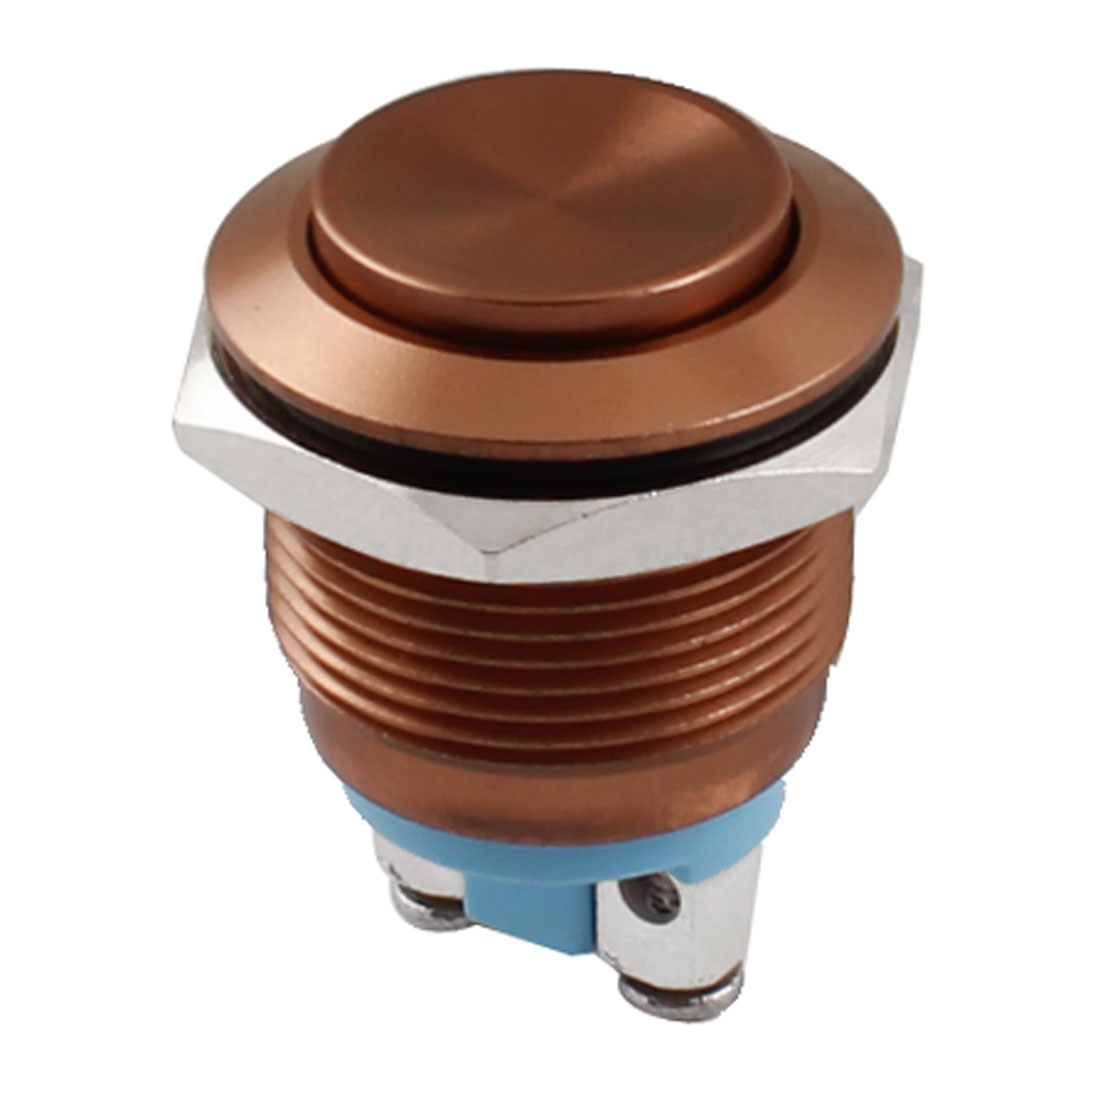 19mm Thread Panel Mount SPST NO Momentary Coffee Color Metal Push Button Switch AC 250V 5A